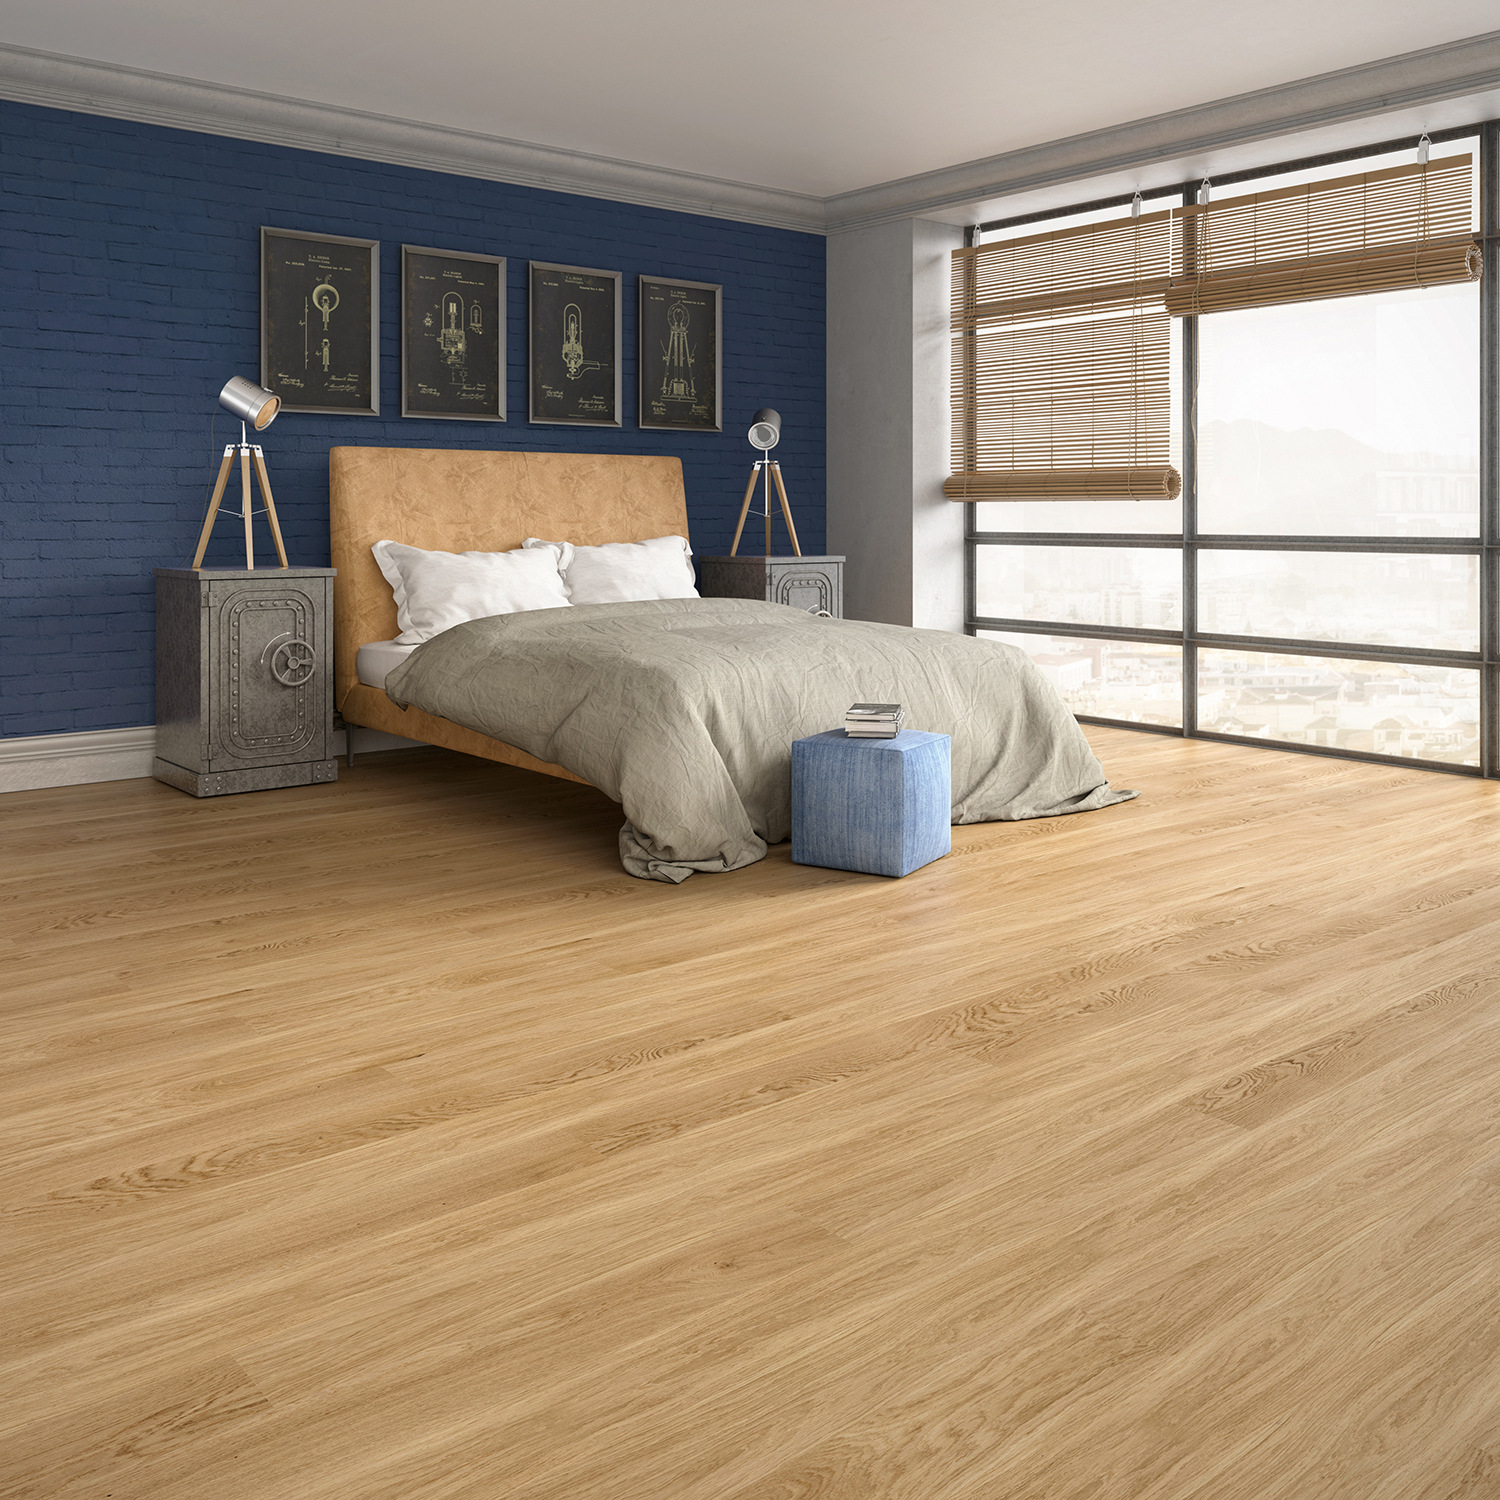 A New Size Of Flooring In The Jeans